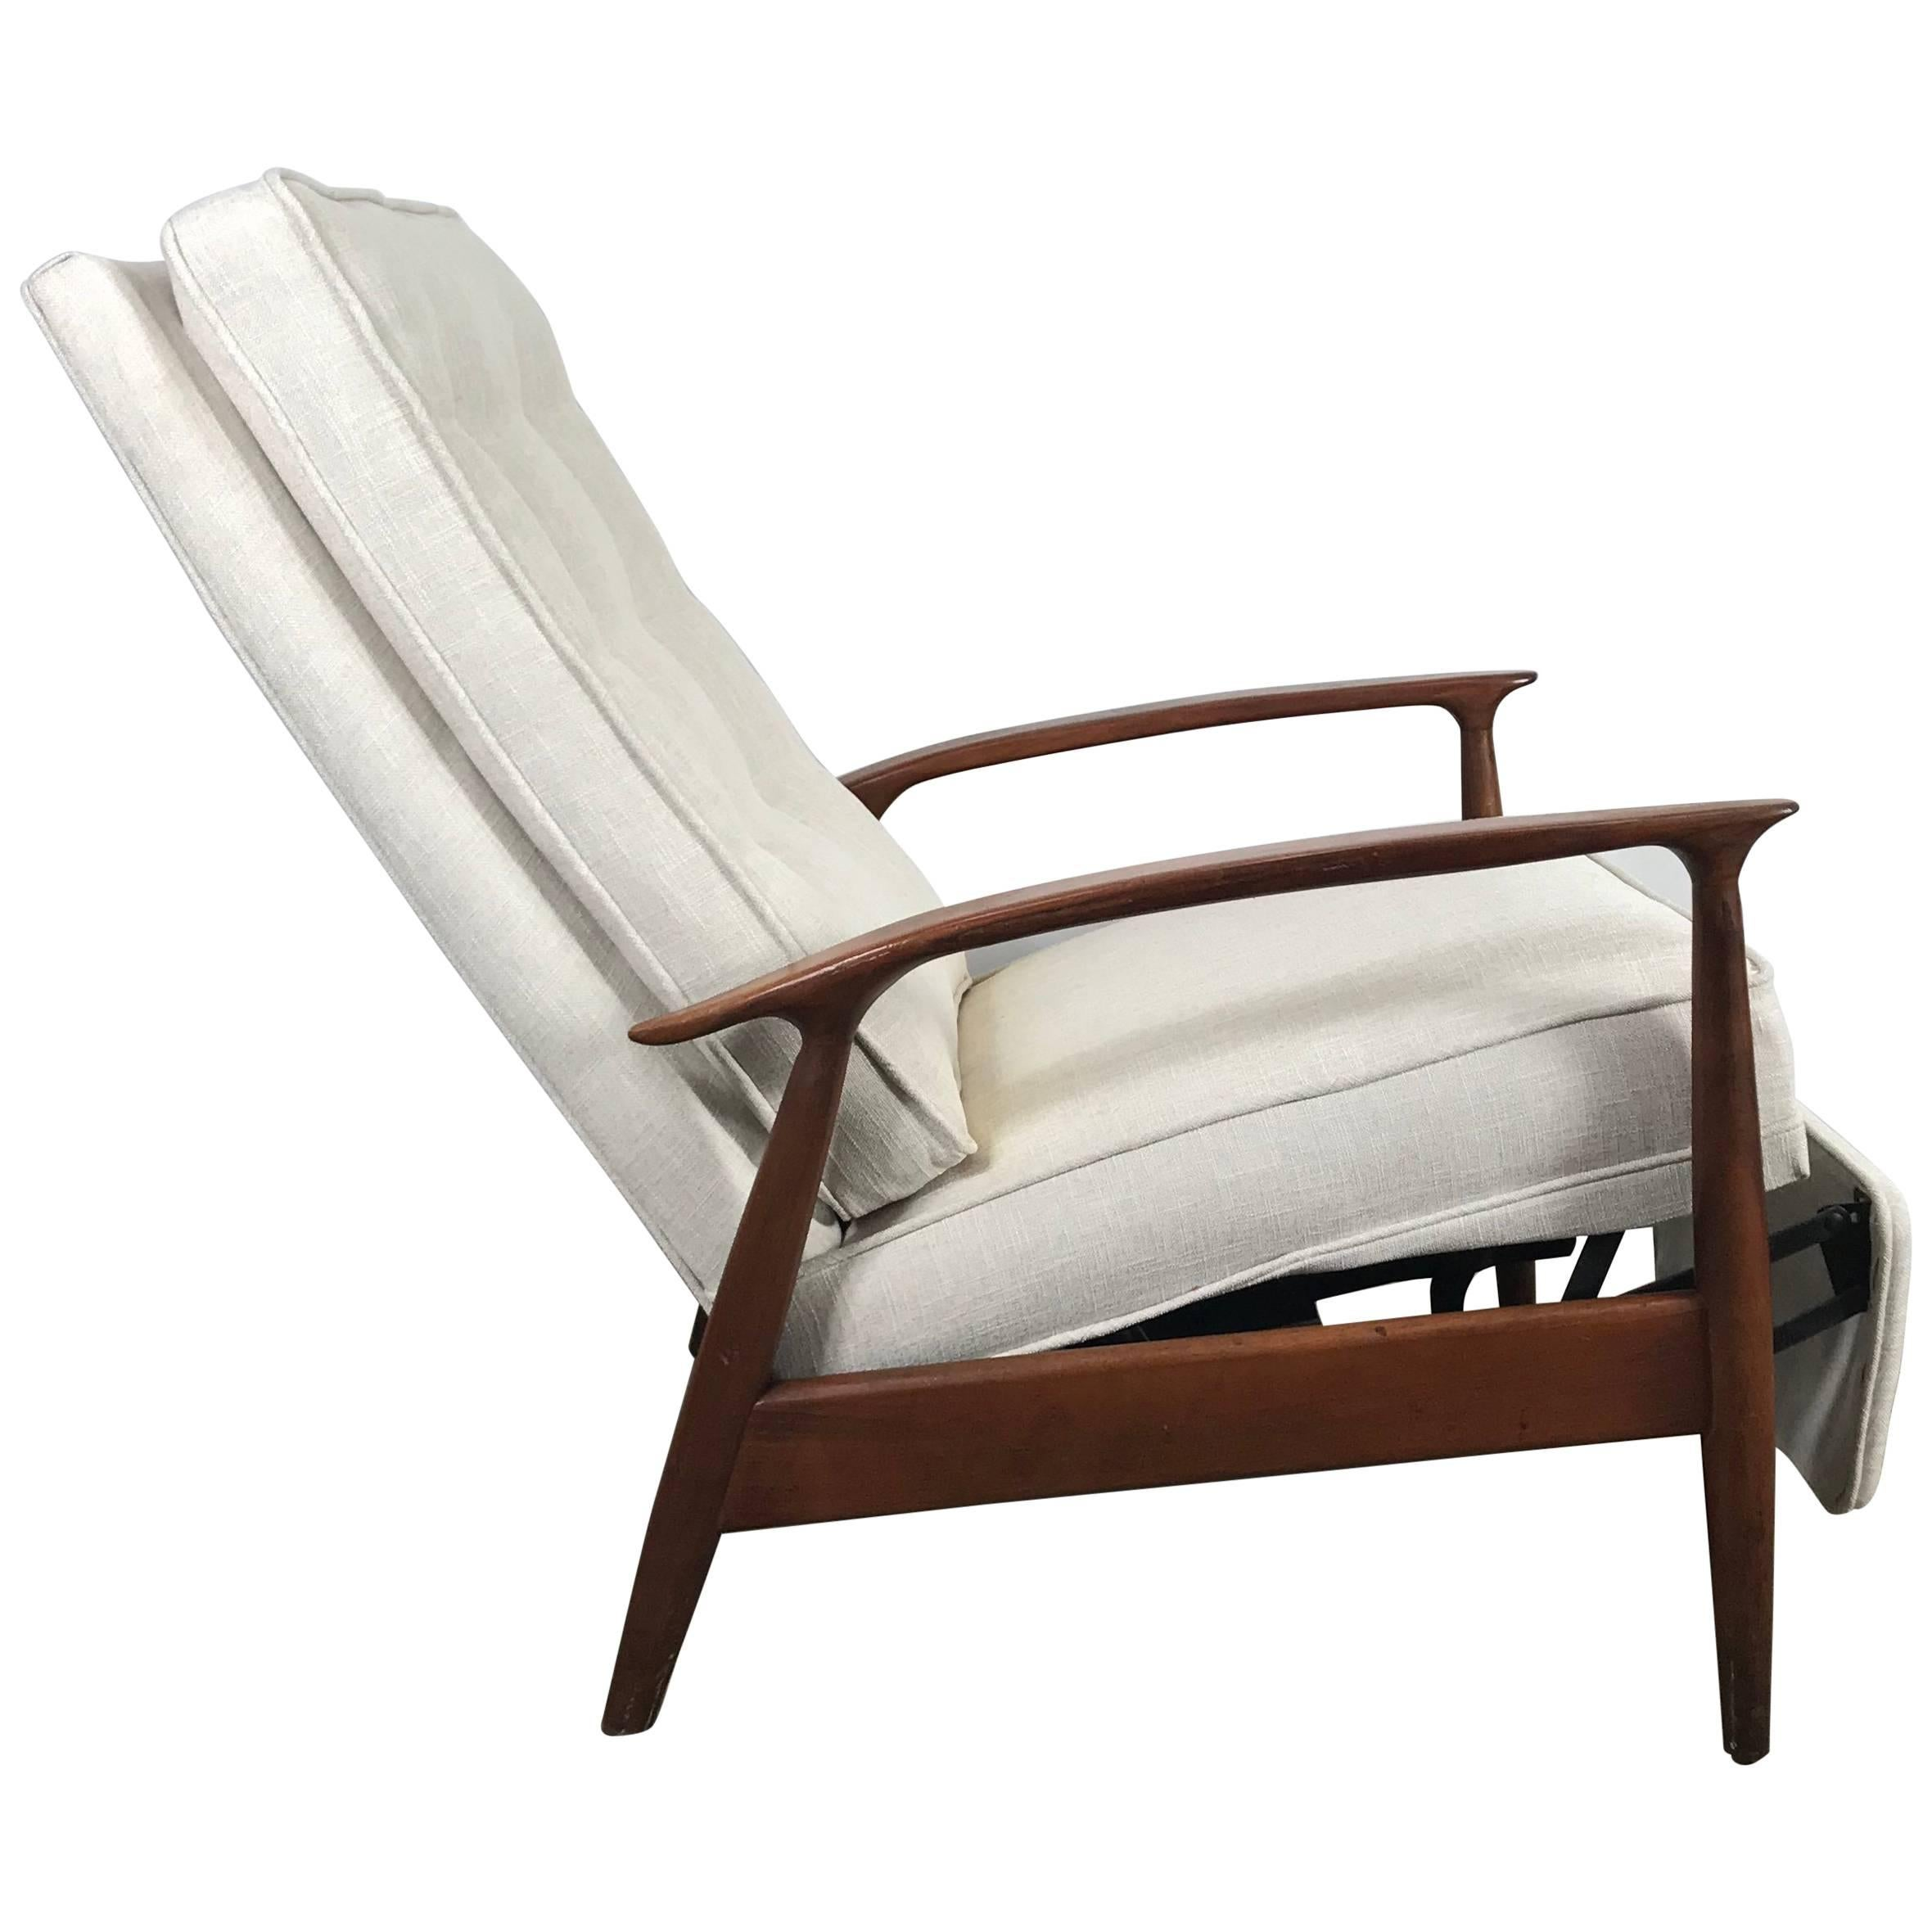 Classic Chair Classic Modernist Reclining Lounge Chair By Milo Baughman